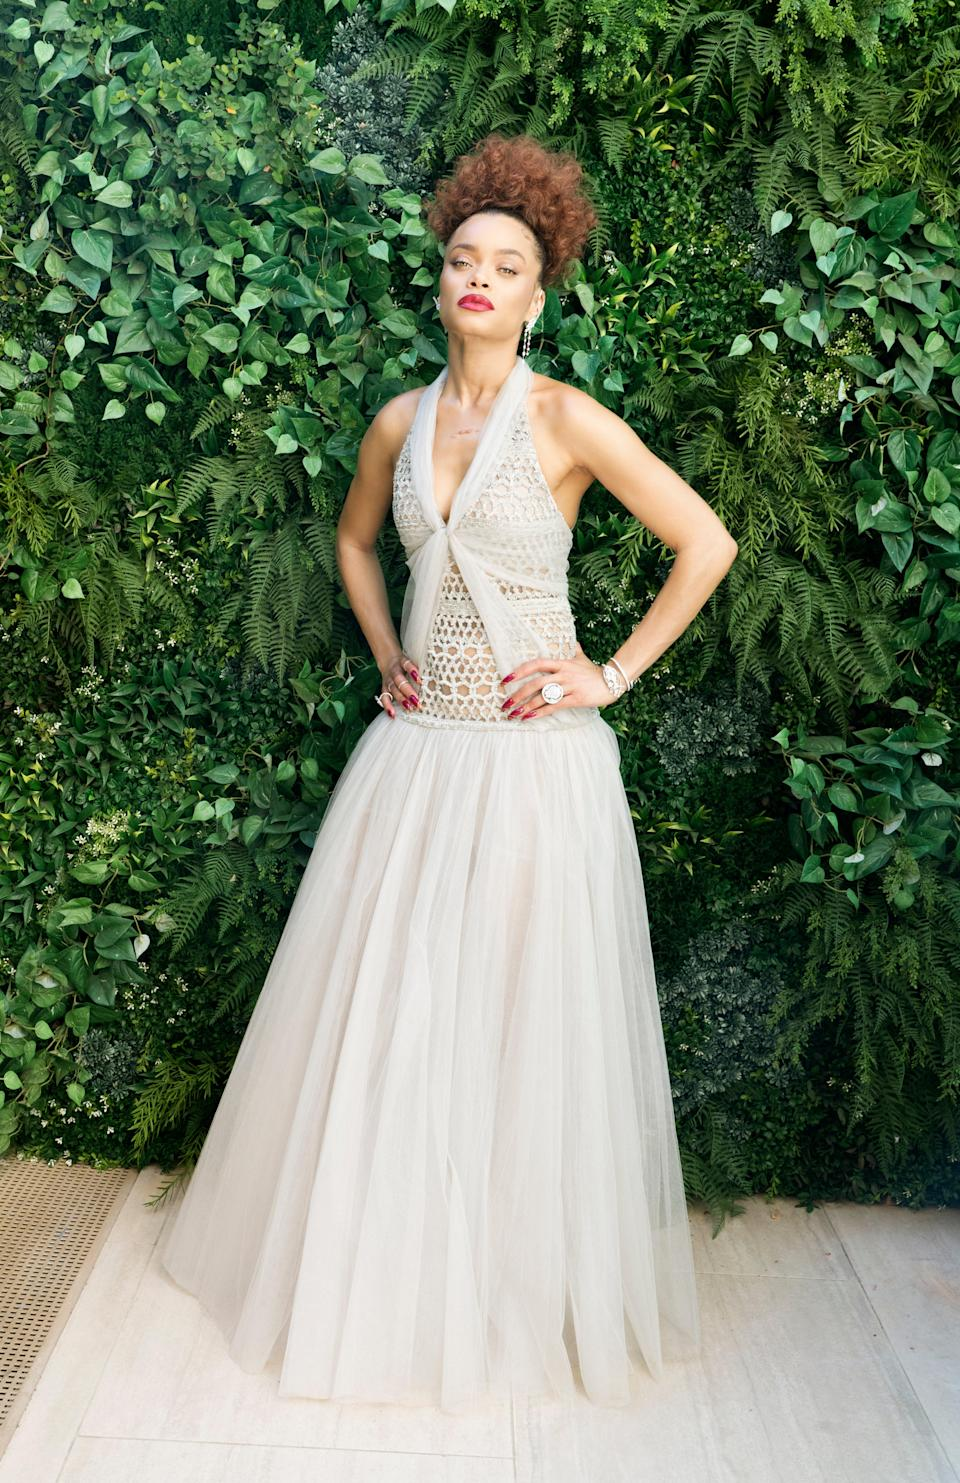 """<h2>Andra Day in Chanel</h2><br>Just like her character in <em><a href=""""https://www.refinery29.com/en-us/2021/02/10330995/united-states-vs-billie-holiday-prada-fashion-black-excellence"""" rel=""""nofollow noopener"""" target=""""_blank"""" data-ylk=""""slk:The United States vs. Billie Holiday"""" class=""""link rapid-noclick-resp"""">The United States vs. Billie Holiday</a></em>, Andra Day was the epitome of glamour at the Golden Globes, wearing a light gray, crochet gown by Chanel.<span class=""""copyright"""">Photo Credit: Myriam Santos.</span>"""